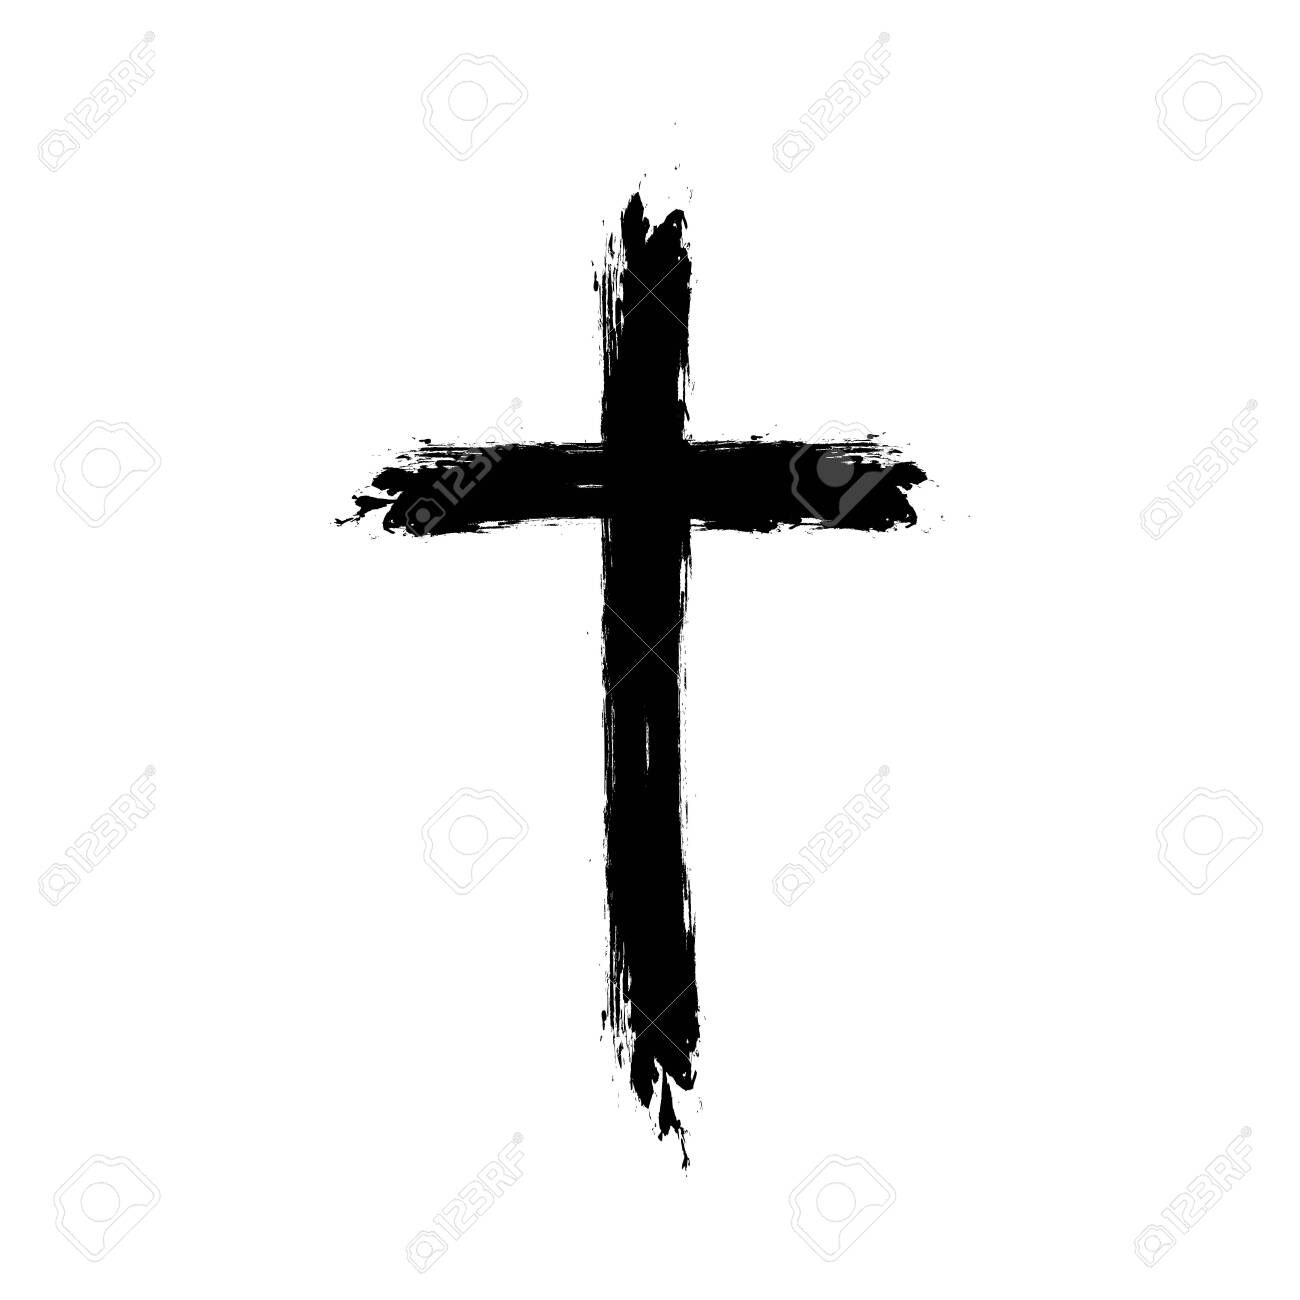 Vector cross silhouette with blood and shadow. Vector stock illustration. - 145292158